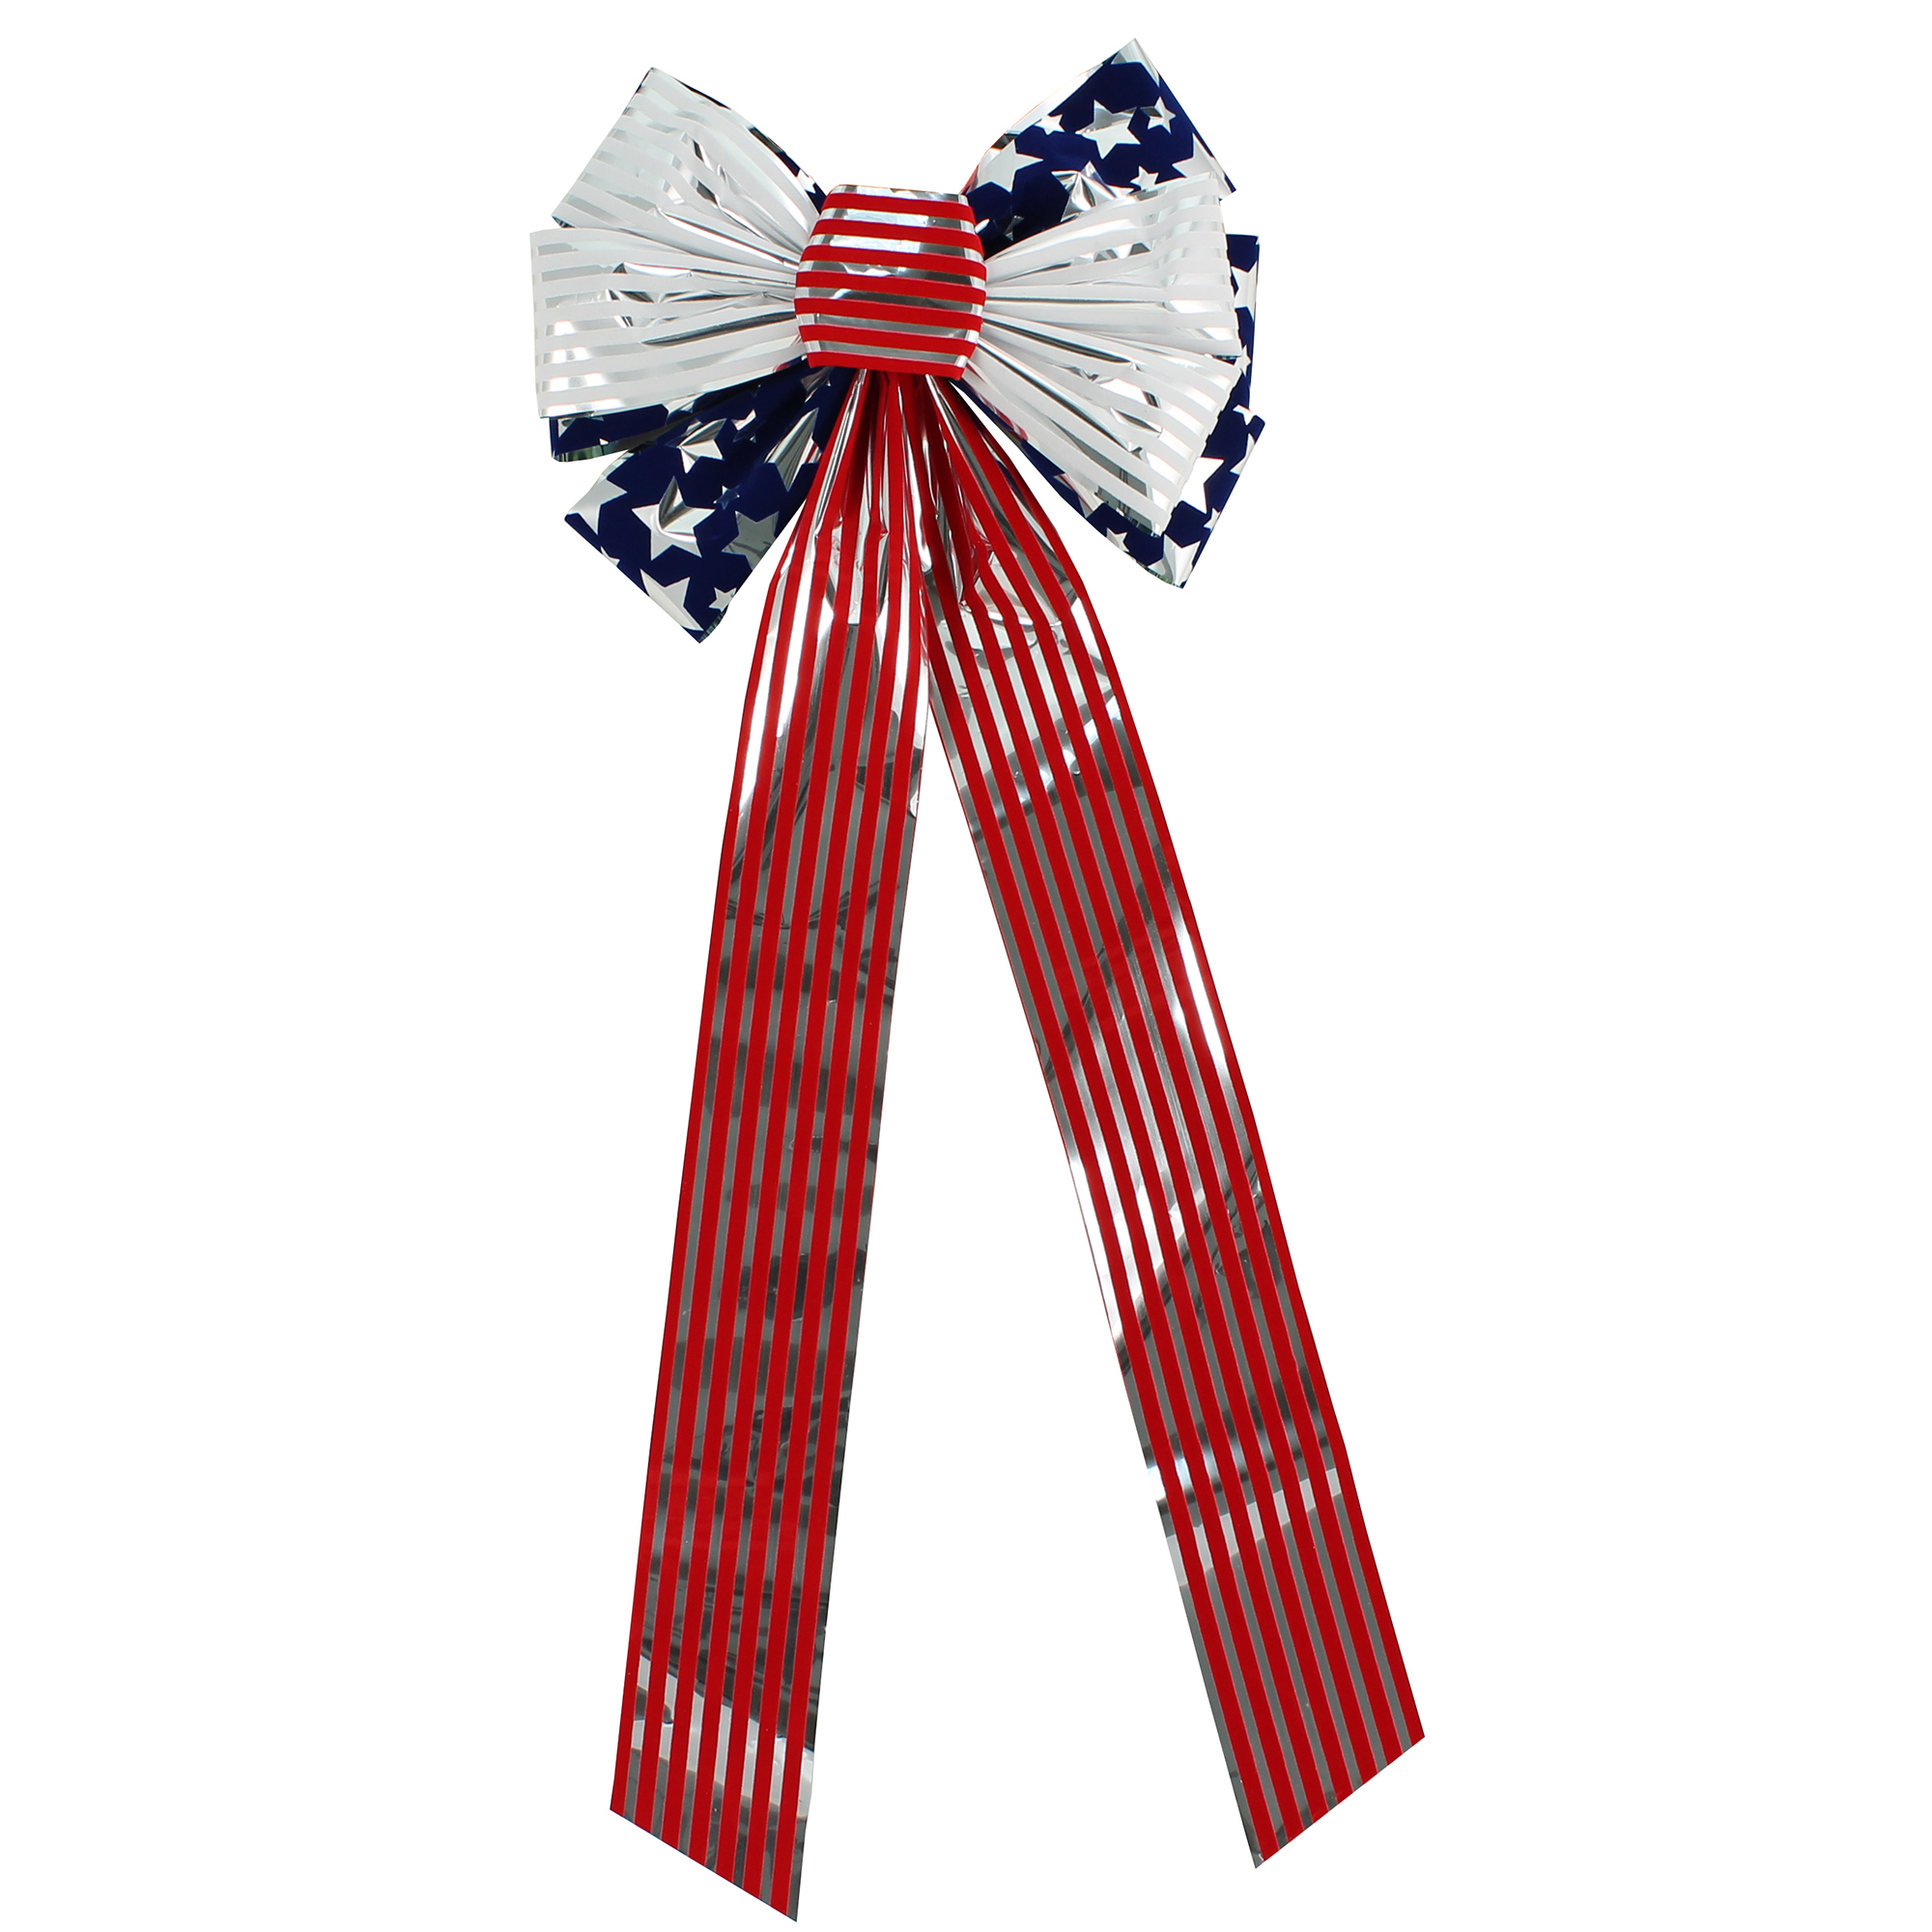 MEDIUM RED PARTY BOW